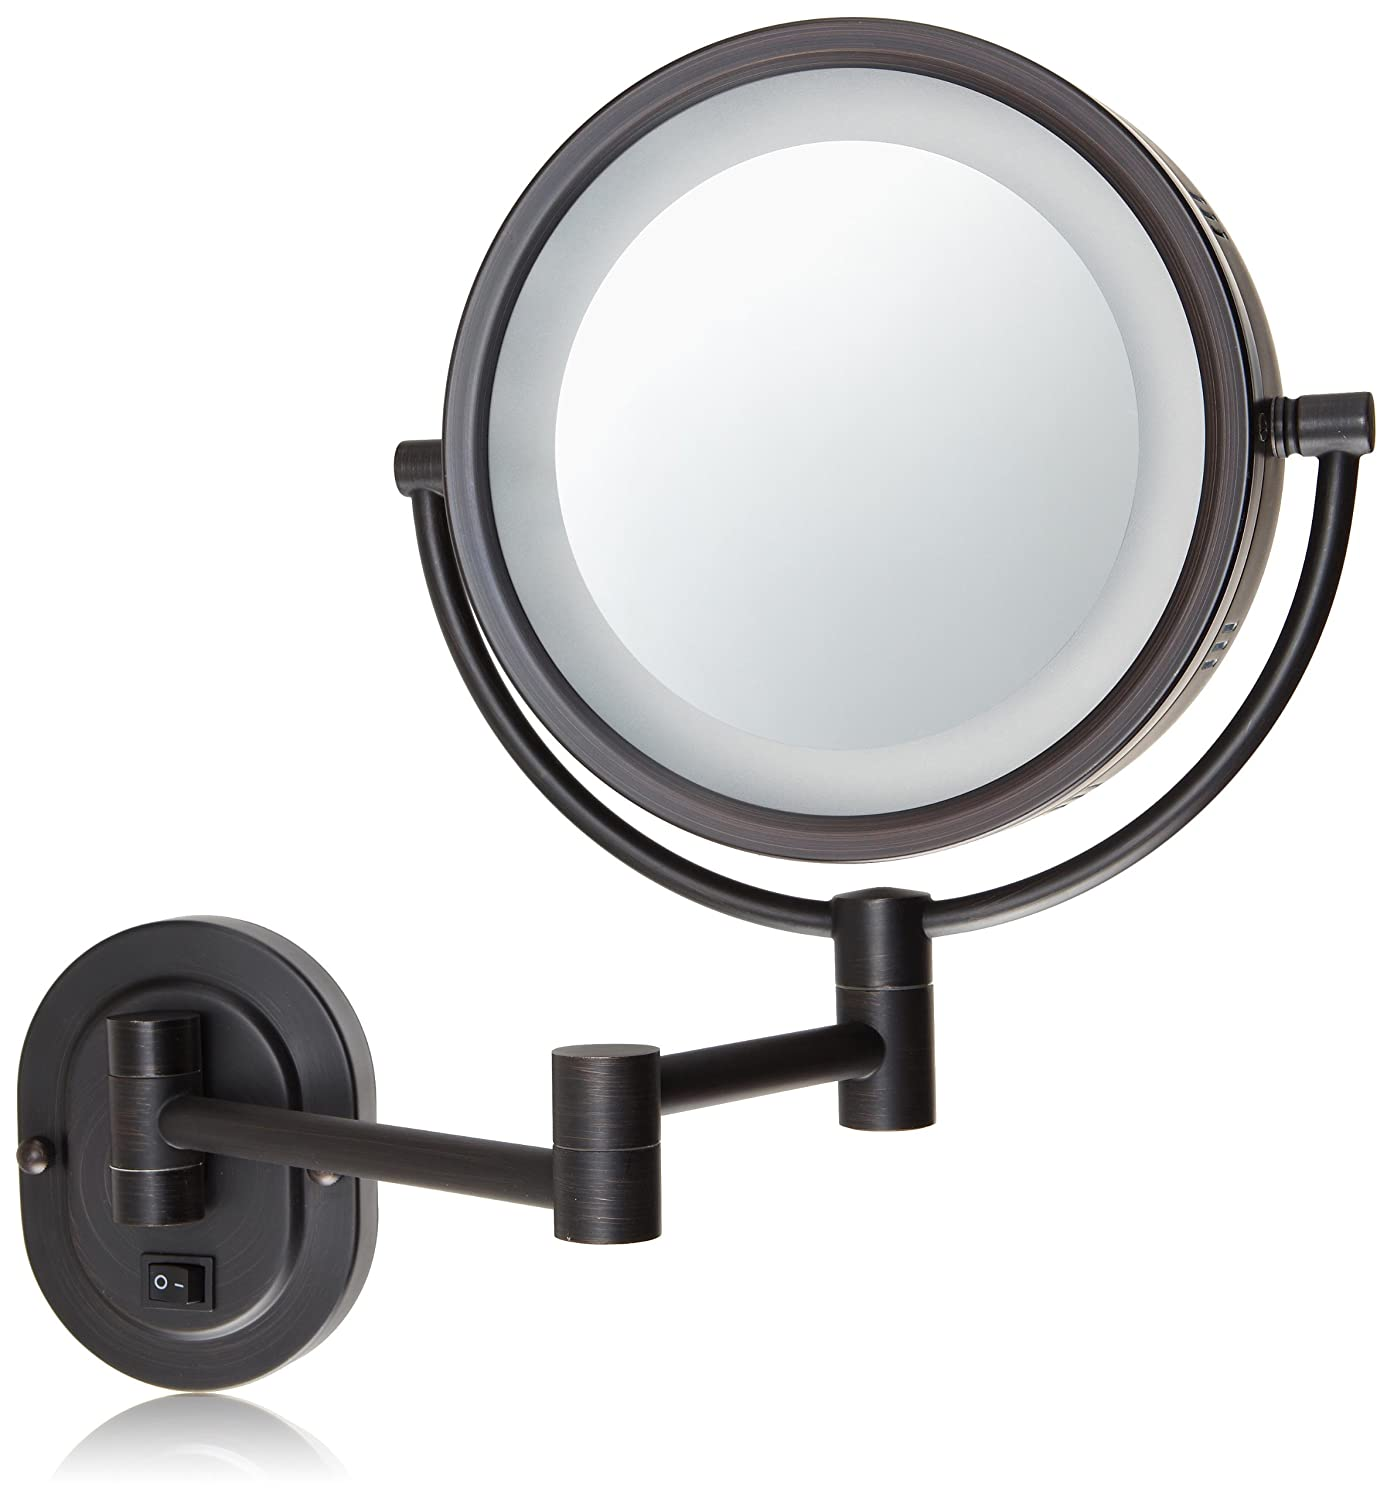 Amazon jerdon hl65bzd 8 inch lighted direct wire wall mount amazon jerdon hl65bzd 8 inch lighted direct wire wall mount makeup mirror with 5x magnification bronze finish personal makeup mirrors beauty amipublicfo Choice Image